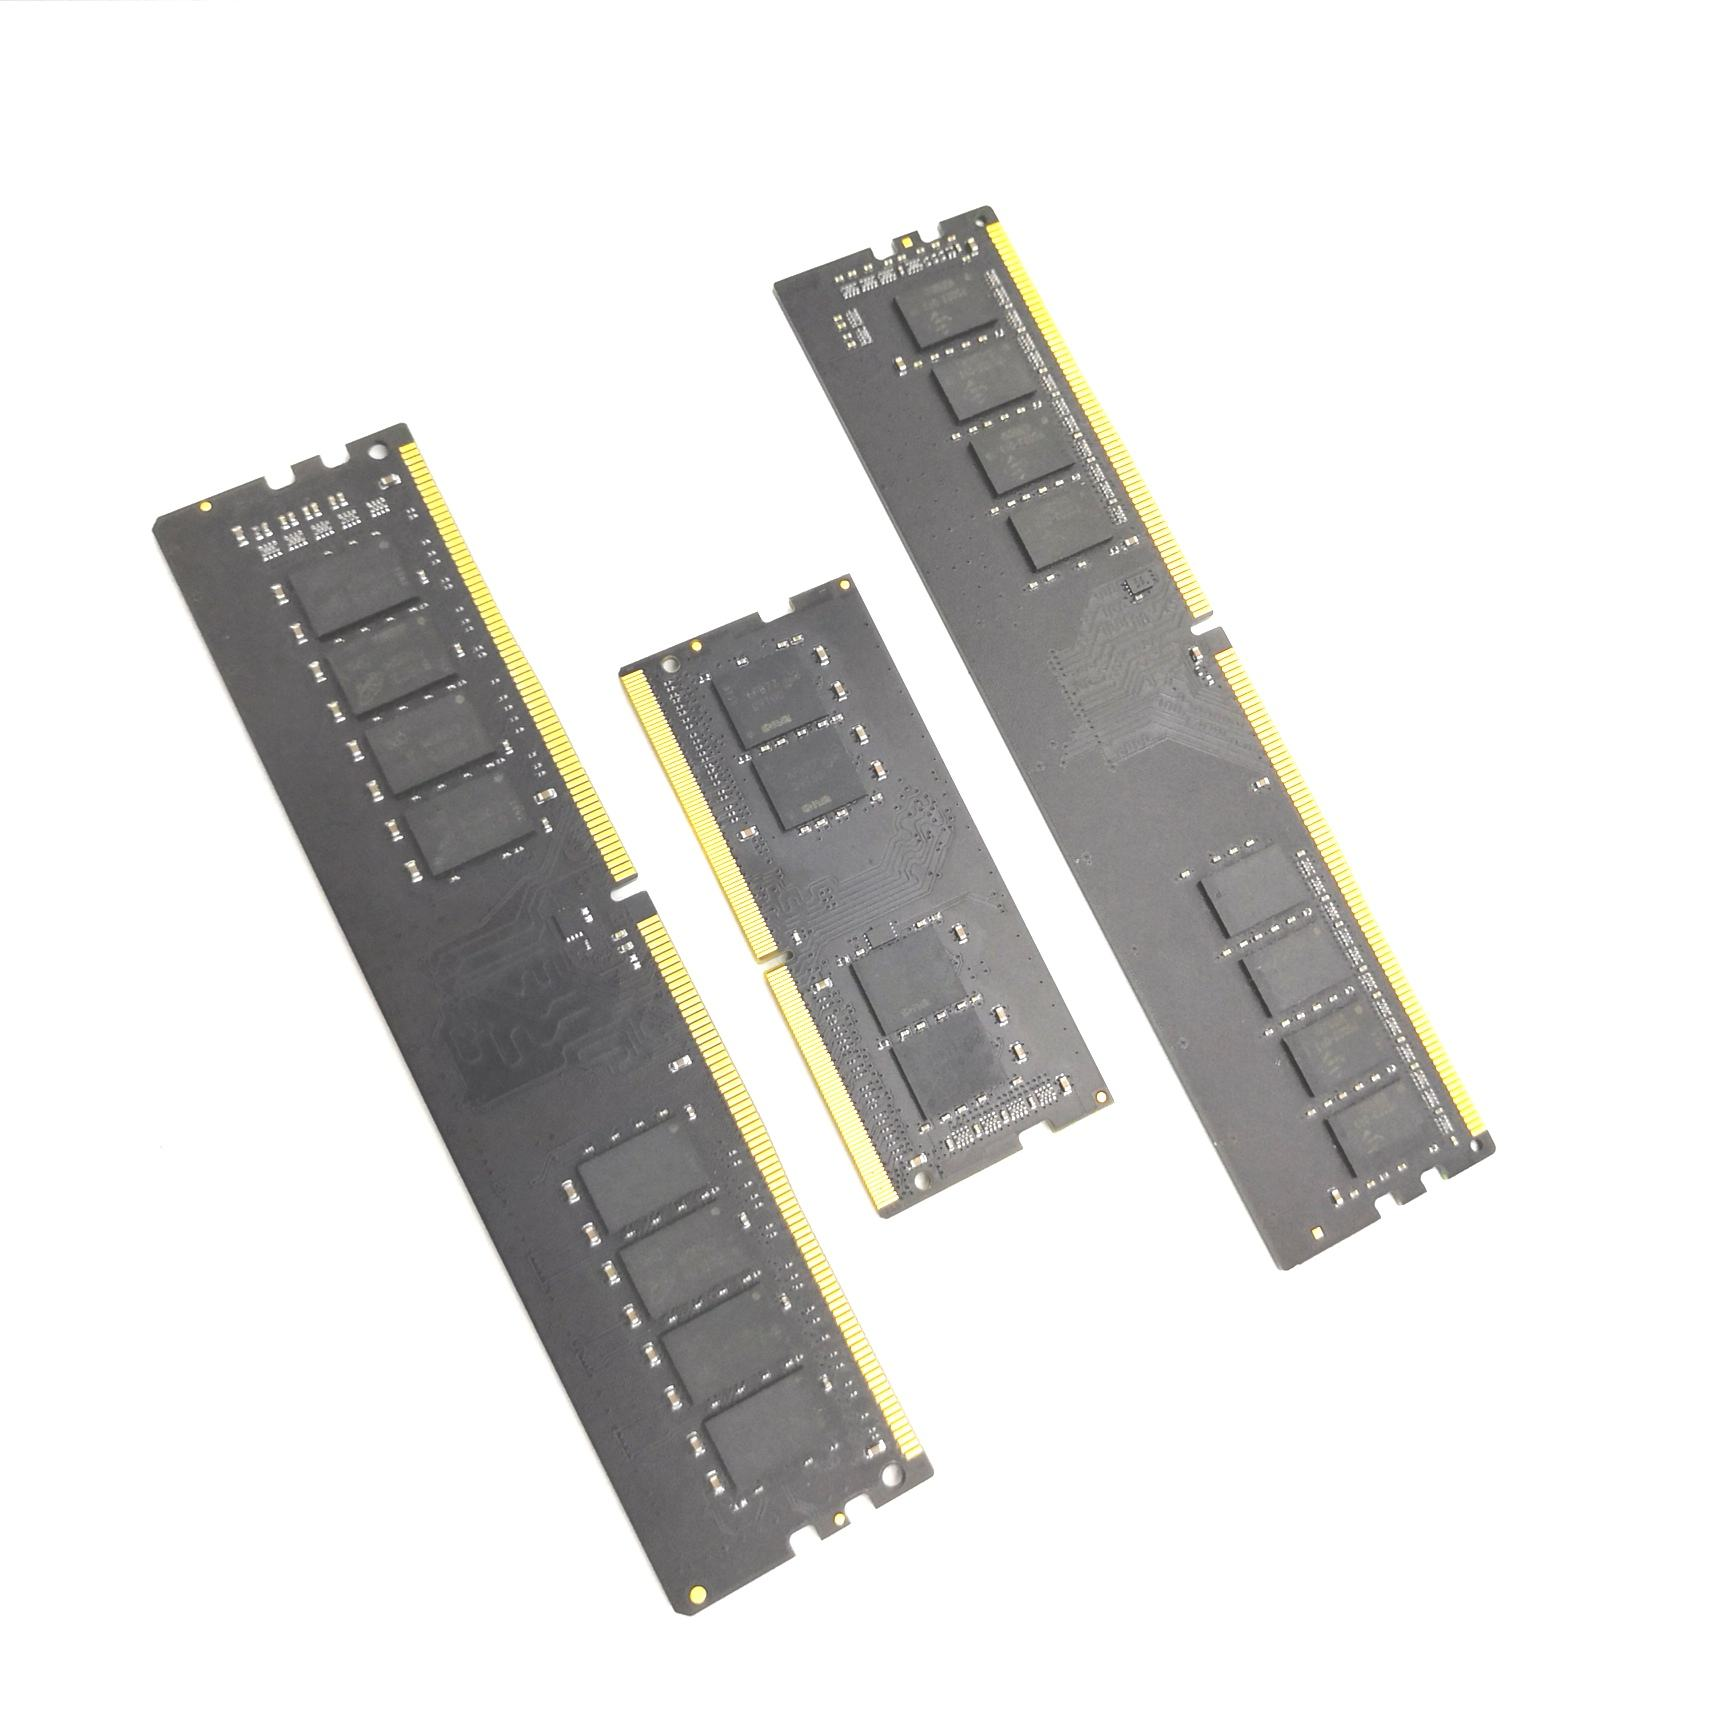 Indilinx Factory Stock DDR <span class=keywords><strong>Speicher</strong></span> <span class=keywords><strong>RAM</strong></span> PC800 <span class=keywords><strong>DDR2</strong></span> 1GB 2GB 4GB <span class=keywords><strong>RAM</strong></span> Preis